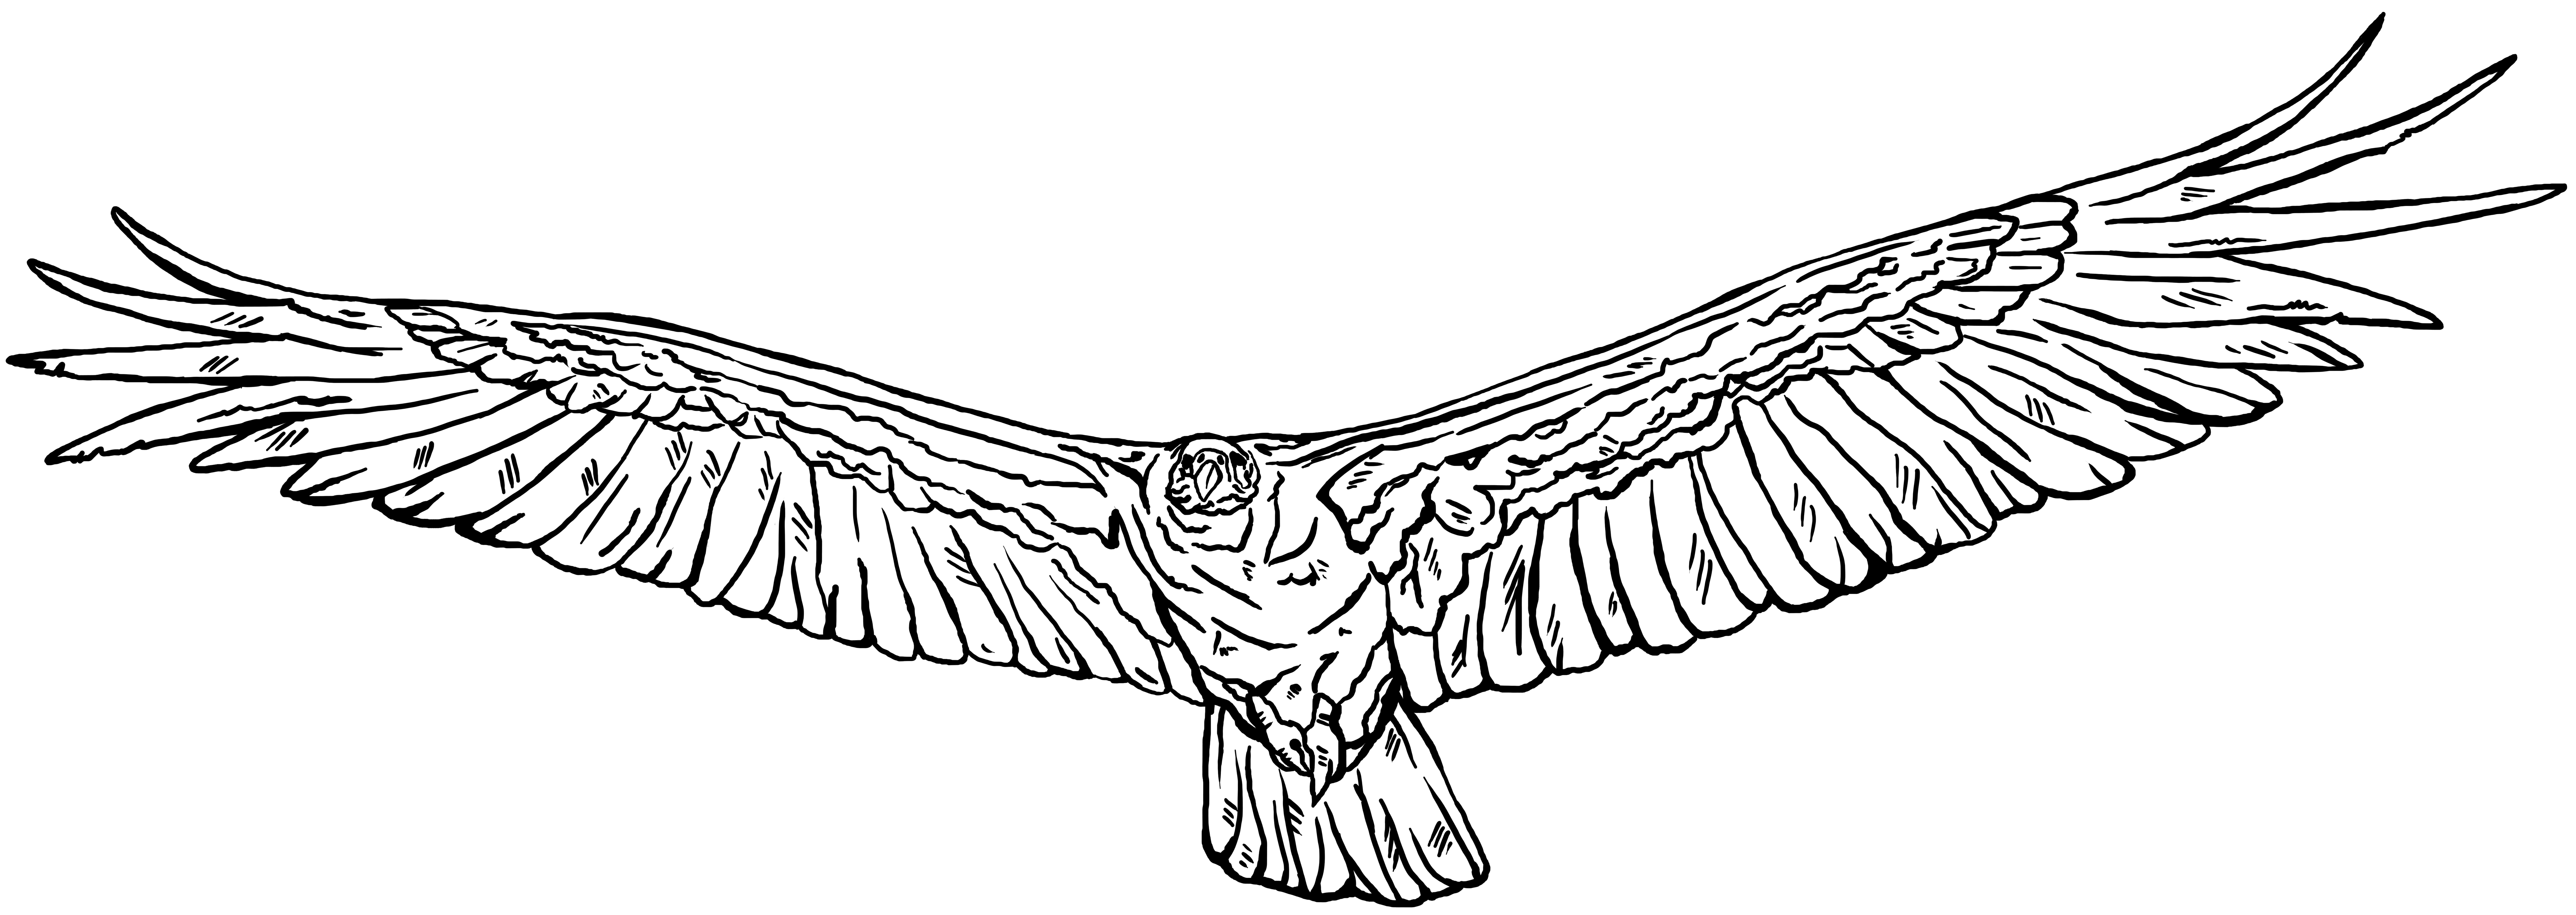 vulture coloring page vulture coloring pages download and print vulture vulture coloring page